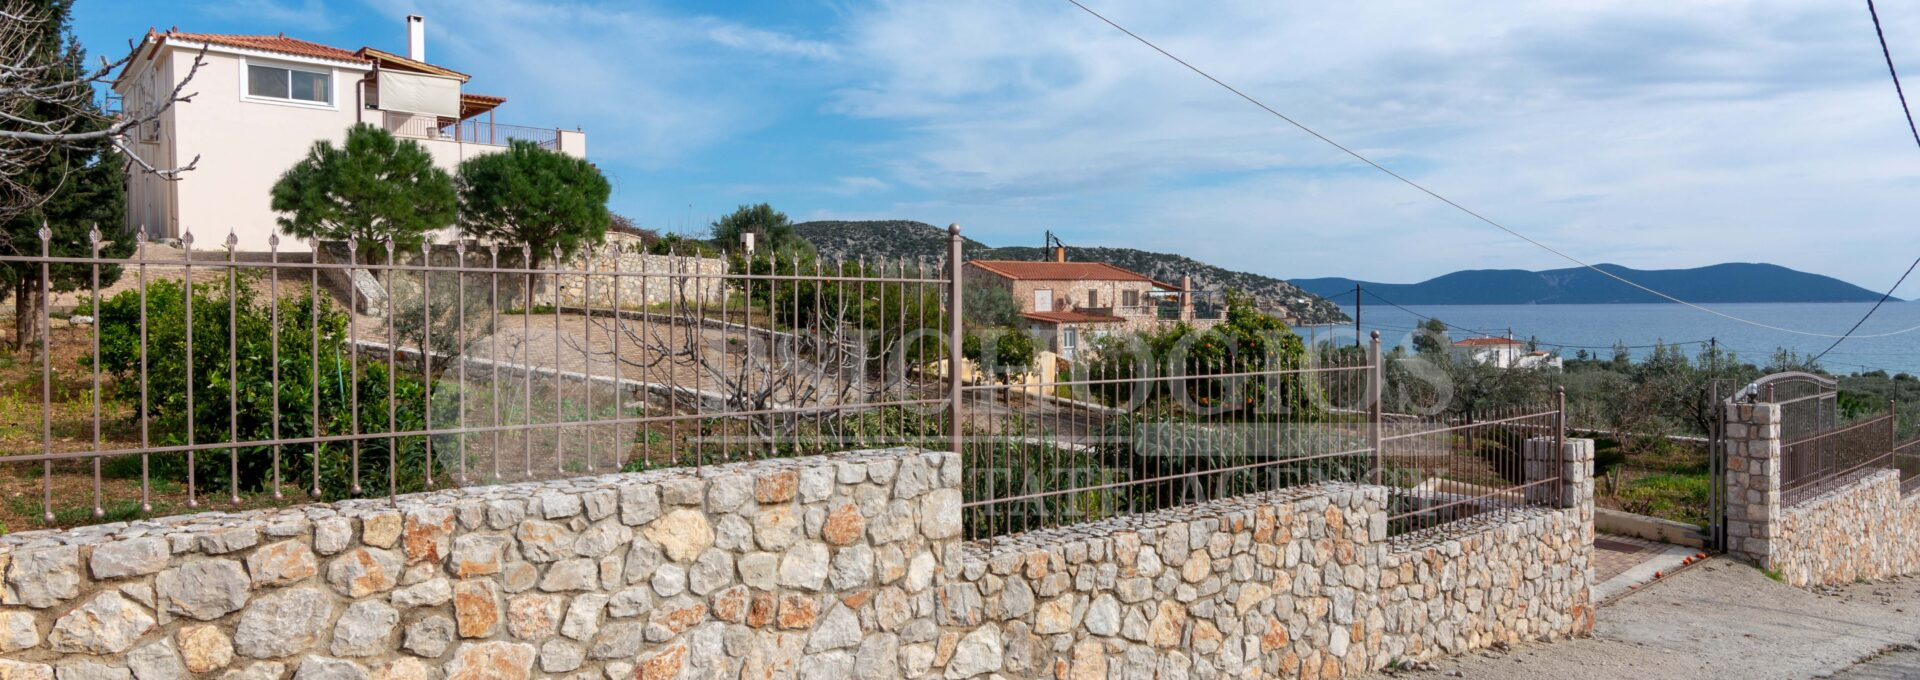 for_sale_house_107_square_meters_3_bedrooms_sea_view_ermioni_greece 1 1 (44)